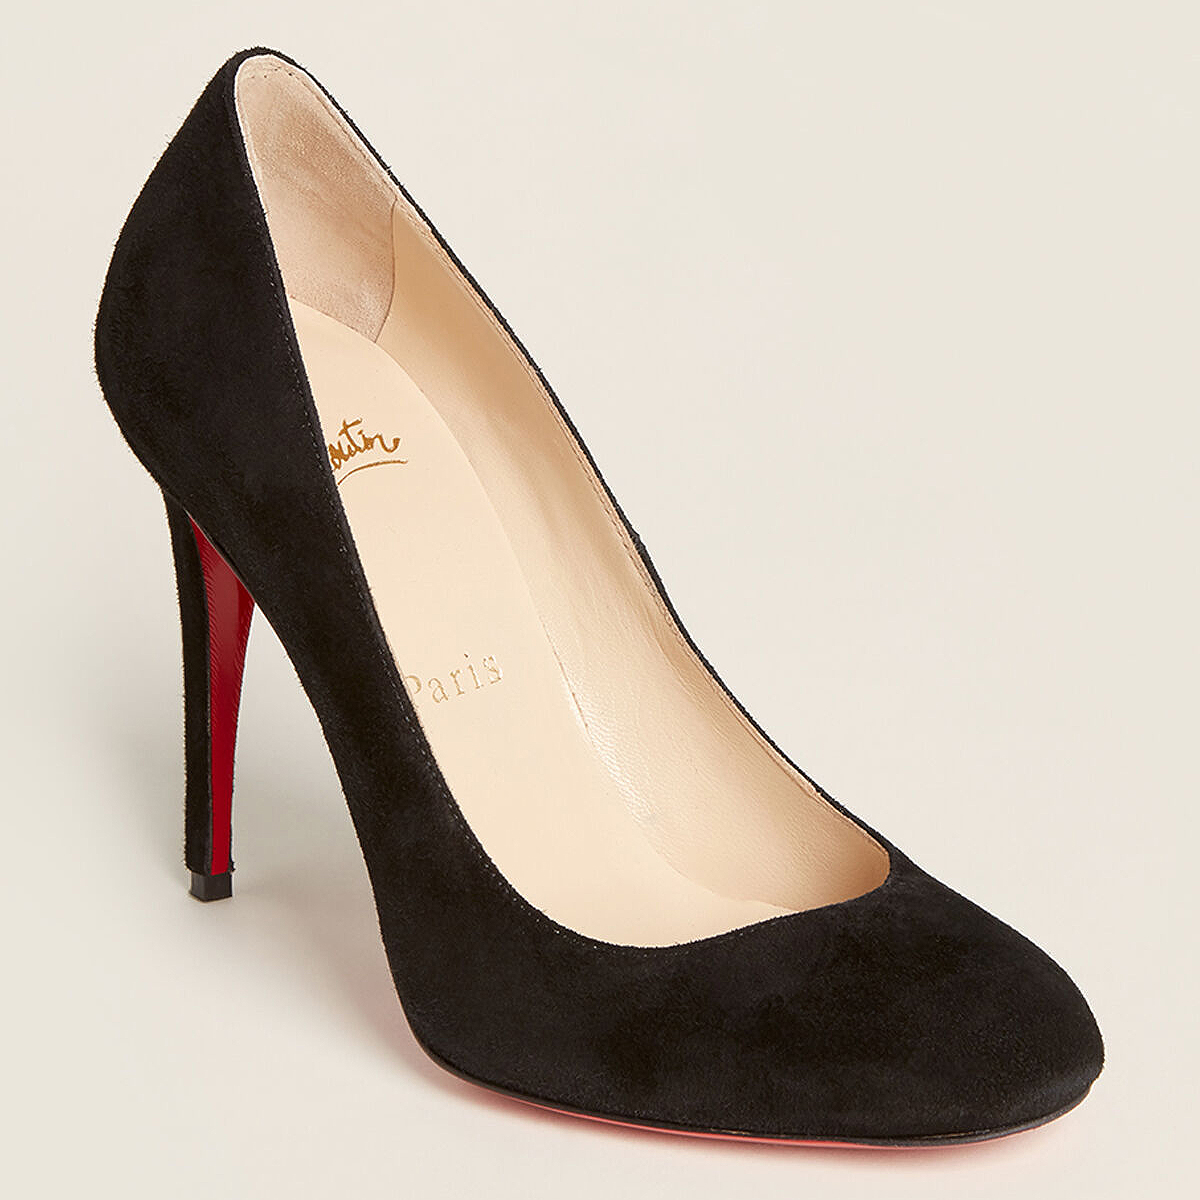 Save Literally Hundreds of Dollars on These 5 Christian Louboutin Pumps